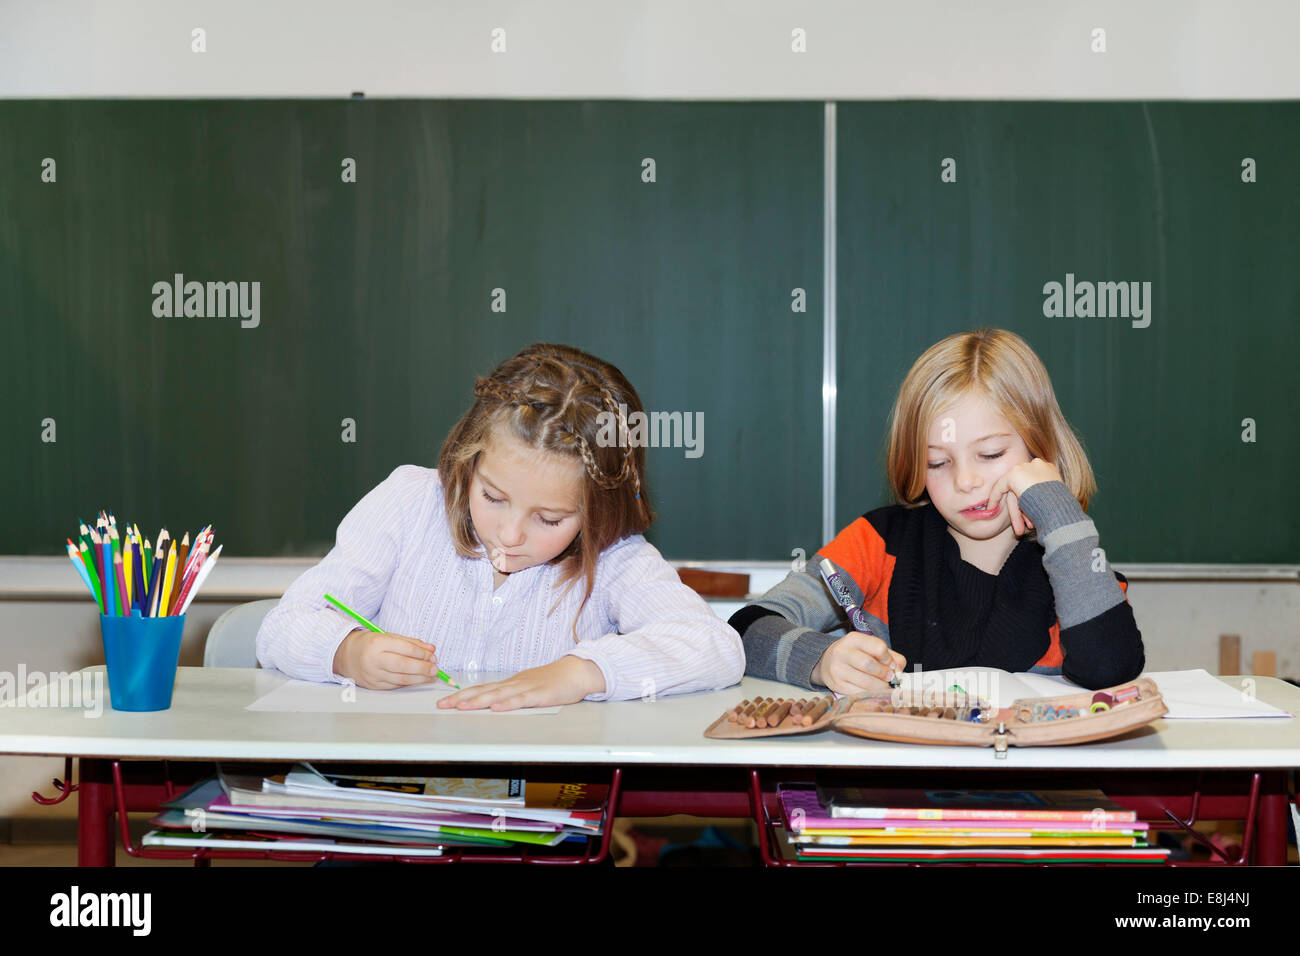 Two schoolgirls, 7 and 9 years, at school - Stock Image